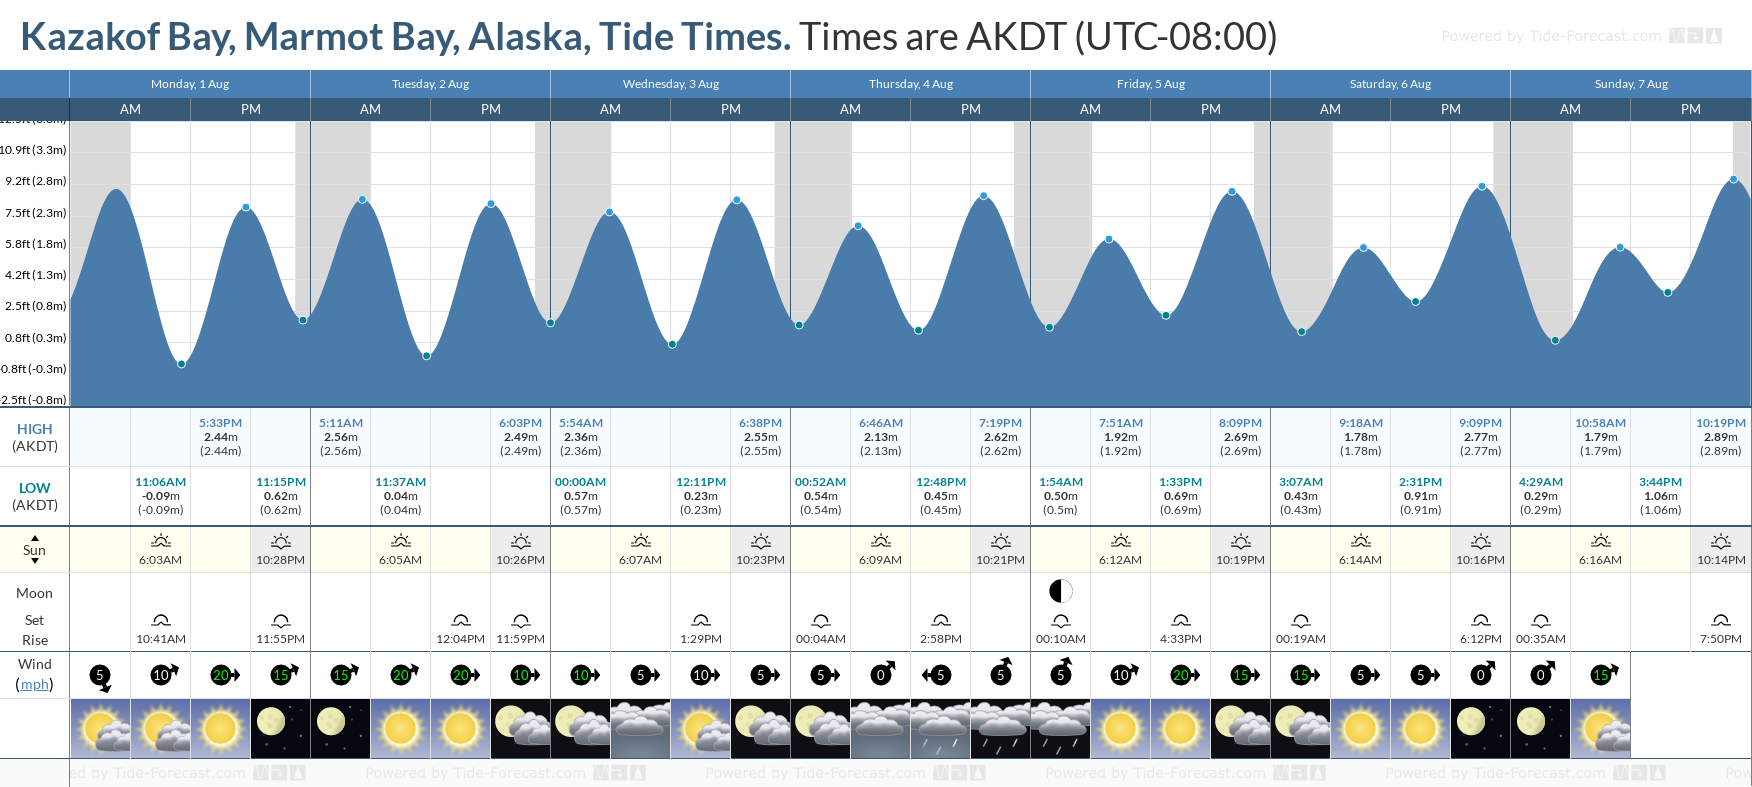 Kazakof Bay, Marmot Bay, Alaska Tide Chart including high and low tide tide times for the next 7 days